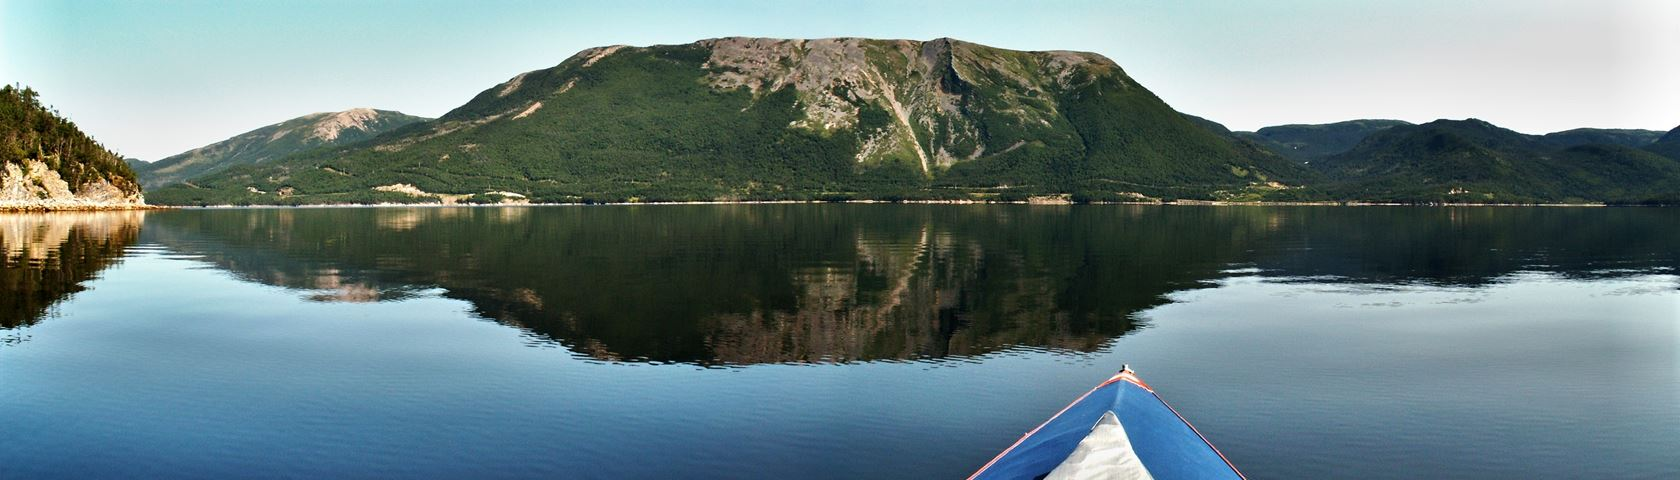 Kayaking at Lomond, Gros Morne National Park, Newfoundland, Canada